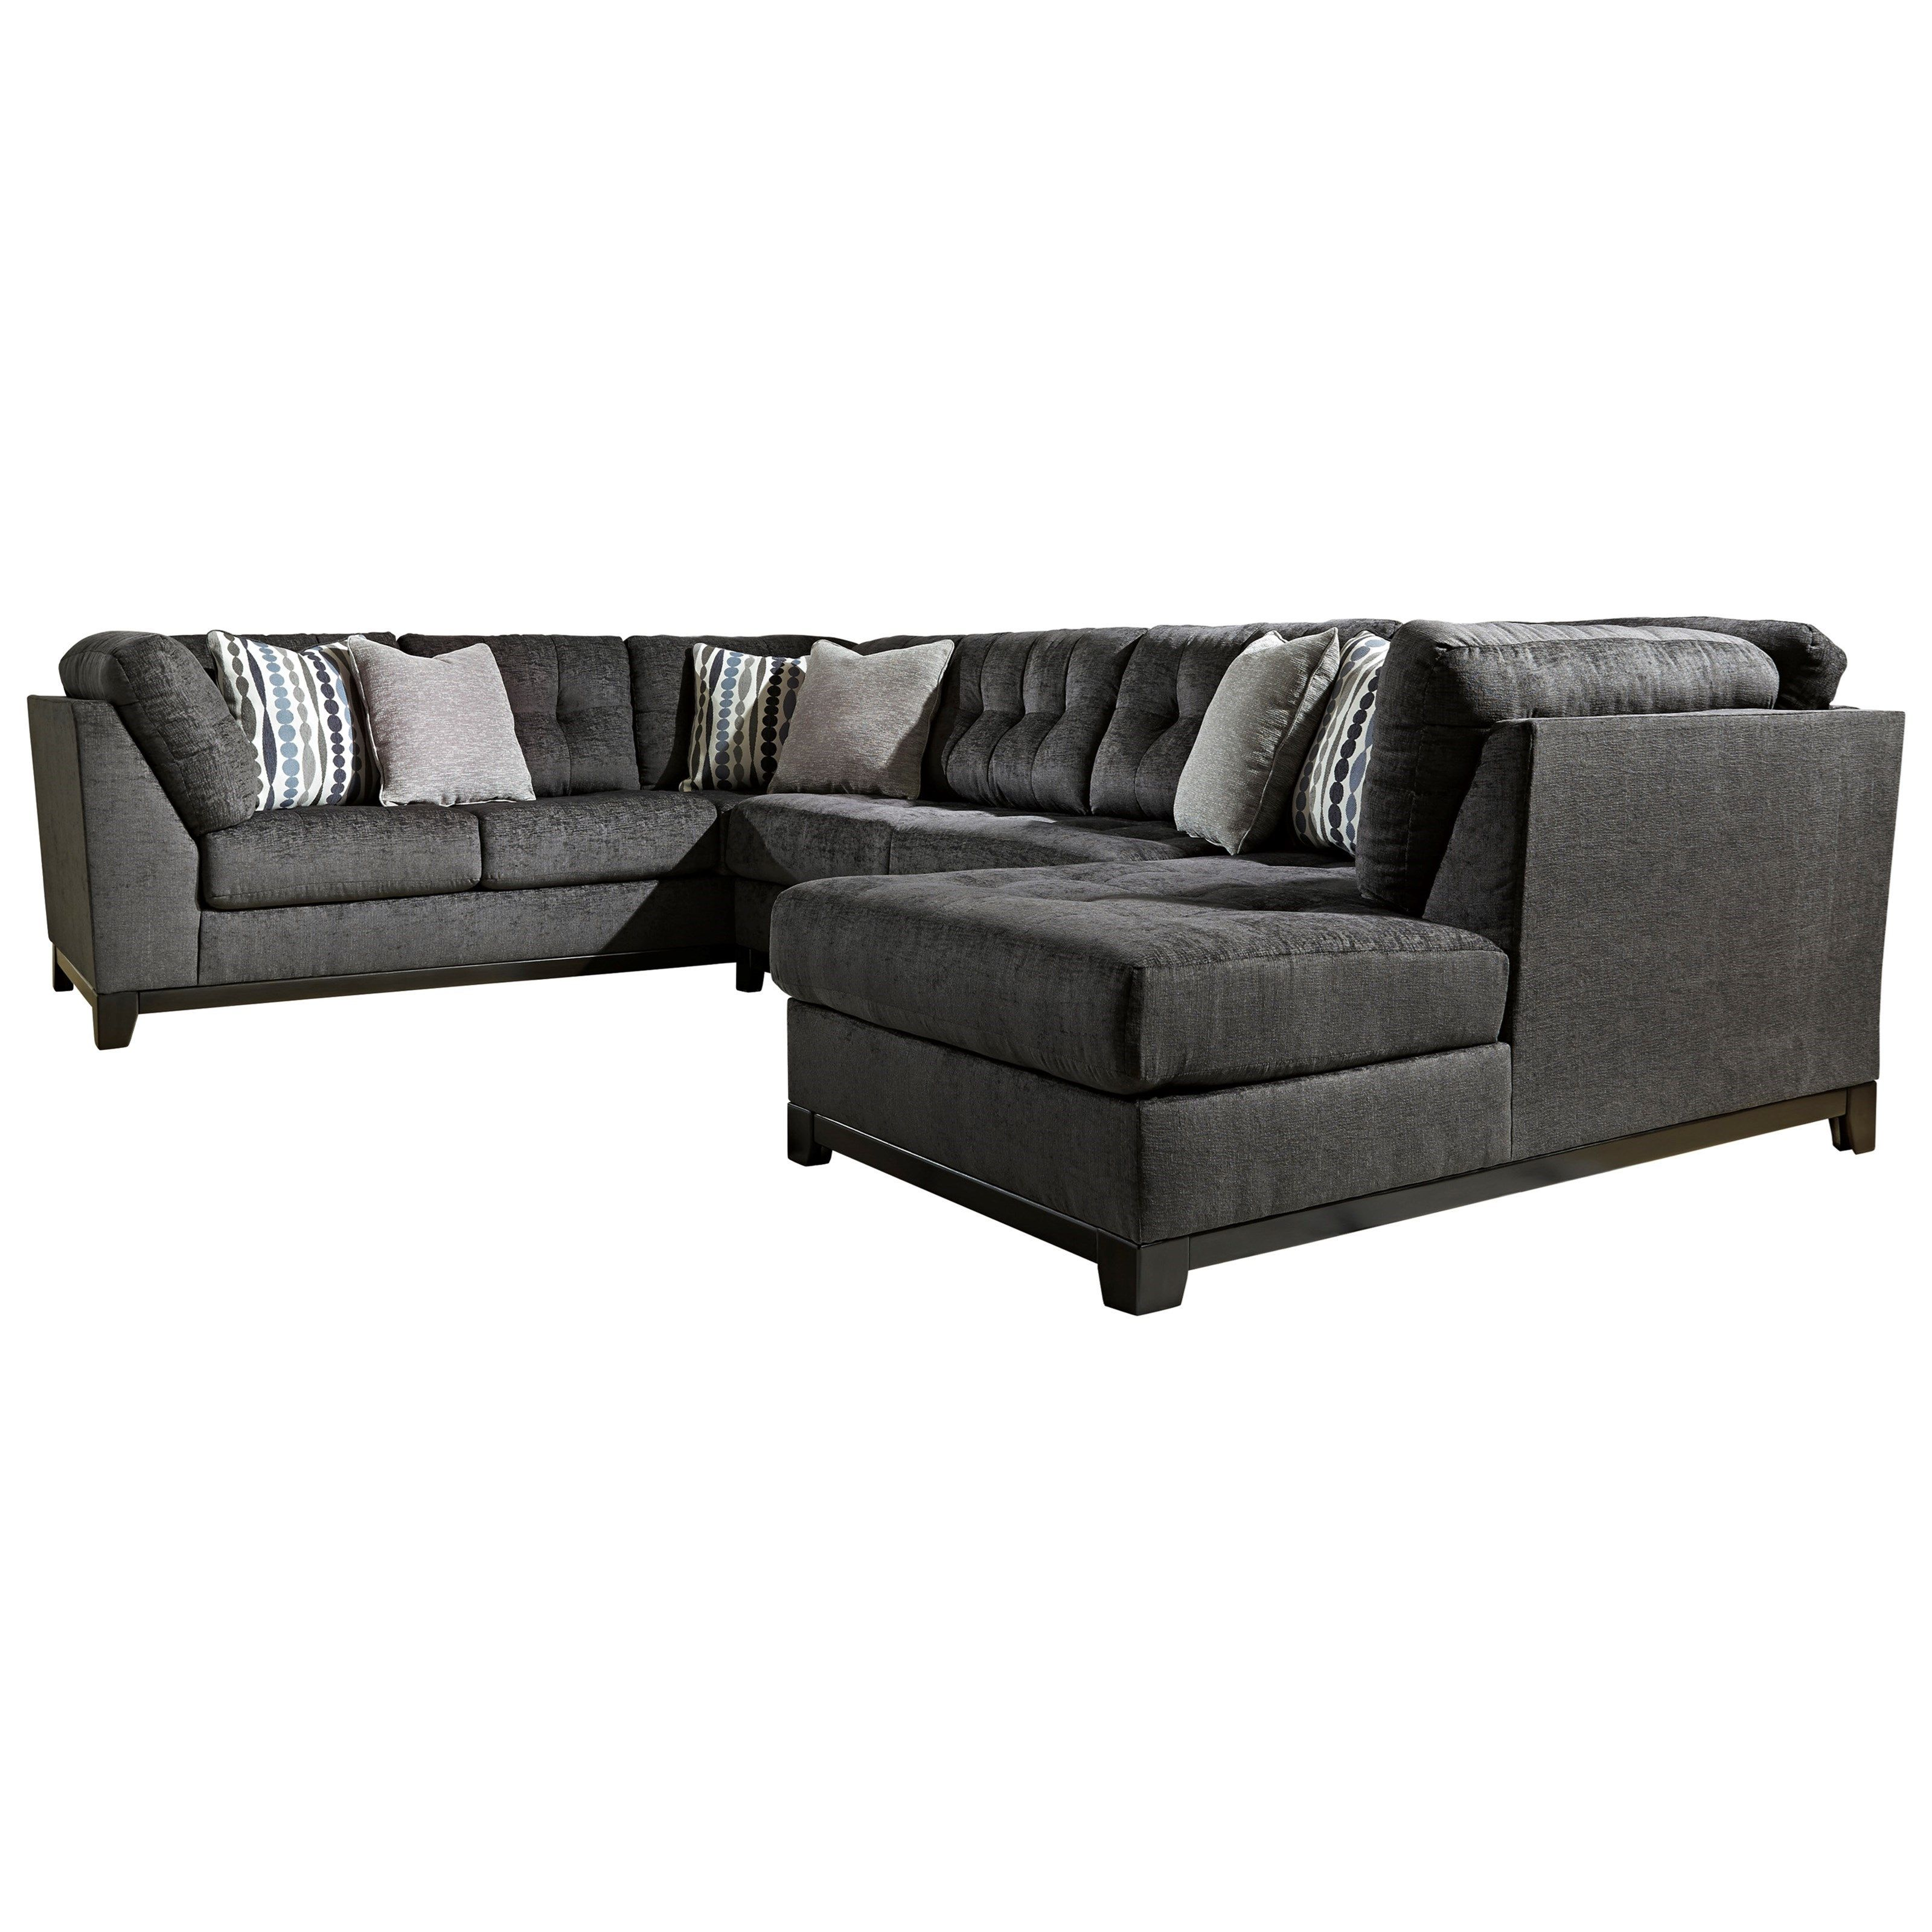 Ashley Furniture Reidshire Sectional Sofa With Right Side Chaise Item Number 6760266 34 17 Sectional Grey Upholstery Ashley Furniture